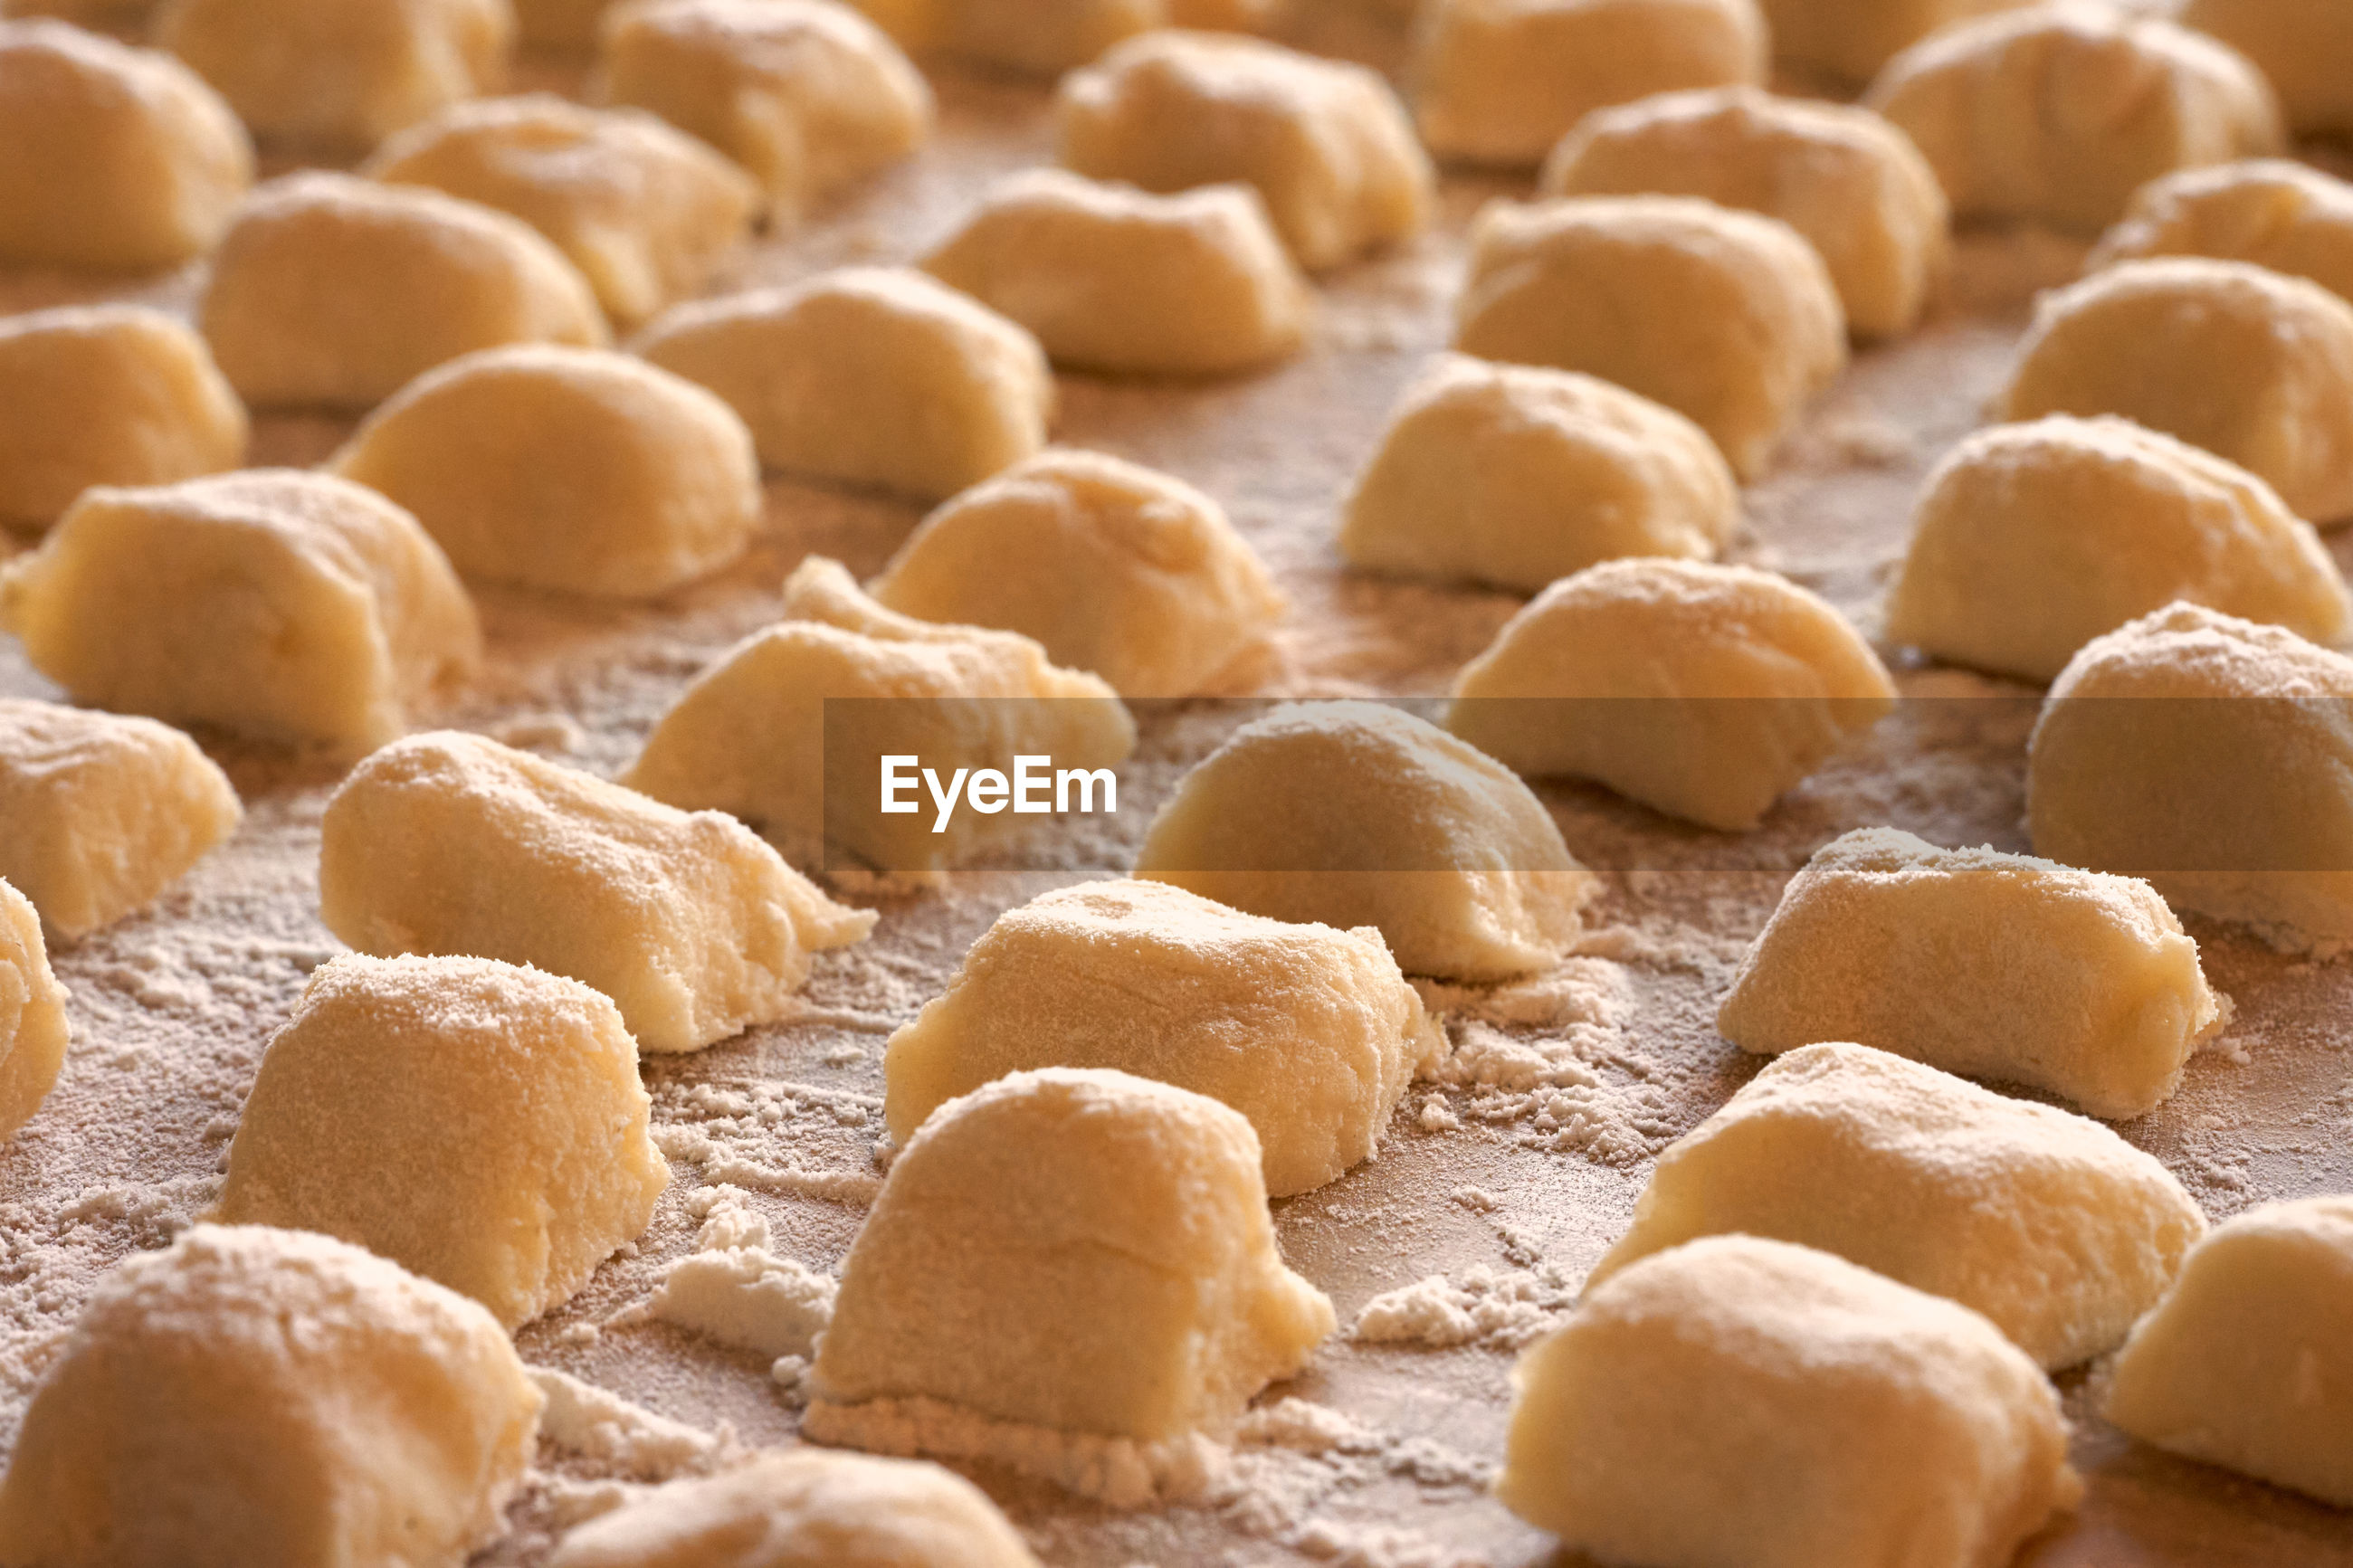 HIGH ANGLE VIEW OF COOKIES IN ROW